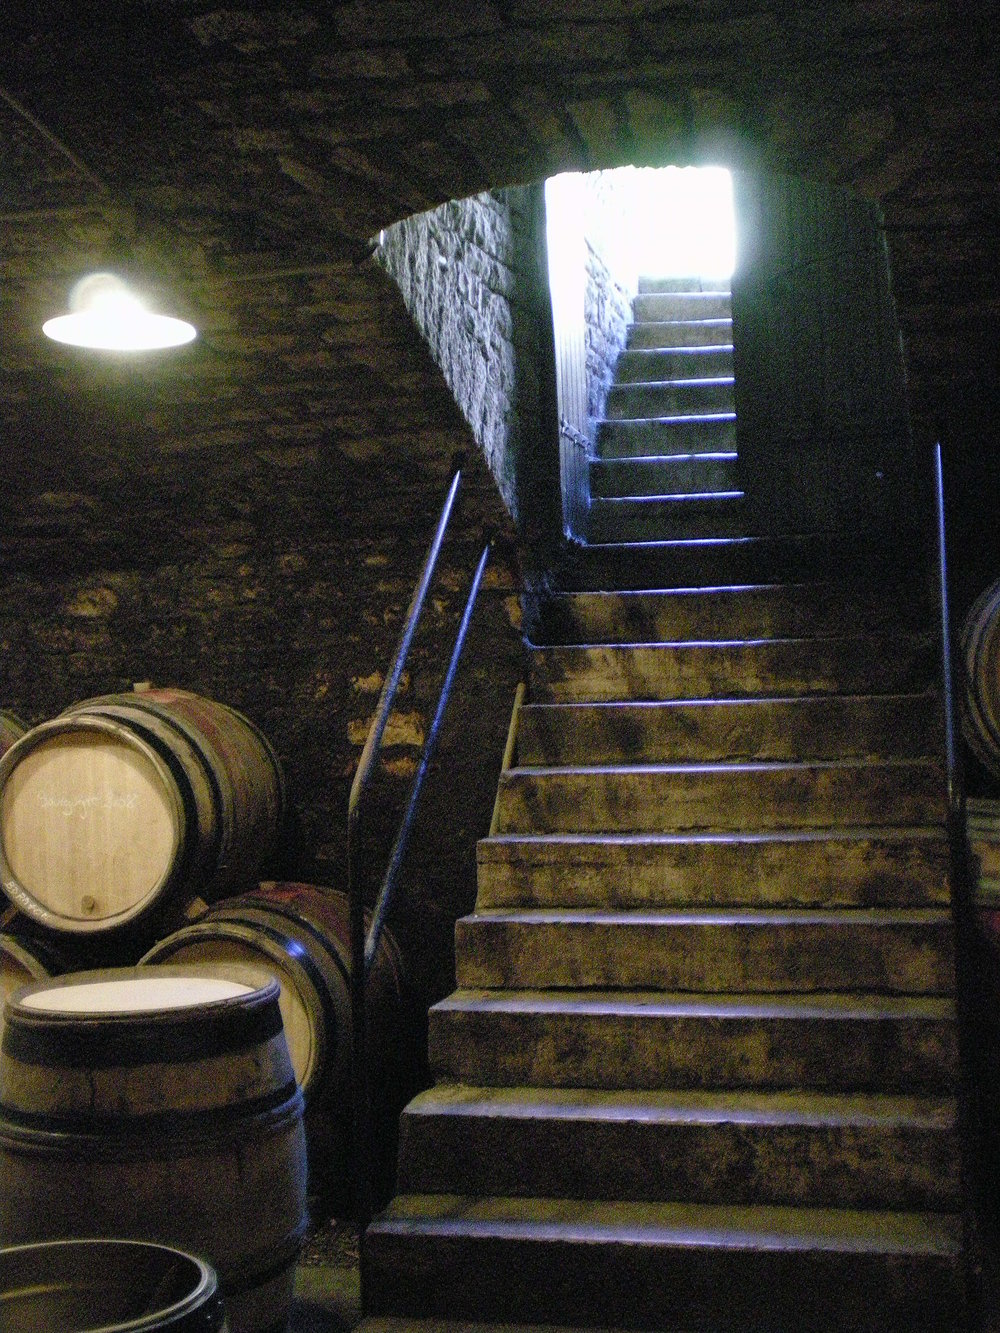 Descendre dans les caves, découvrir des trésors,  déguster des vins effervescents inimitables,  vivre une expérience inoubliable, et repartir avec des étoiles plein les yeux... C'est la magie de la Champagne et de son champagne.  *****  Descend into the cellars, discover their treasures, taste inimitable sparkling wines, like unforgettable experience, and leave with stars in your eyes... This is the magic of Champagne the place and champagne the product.